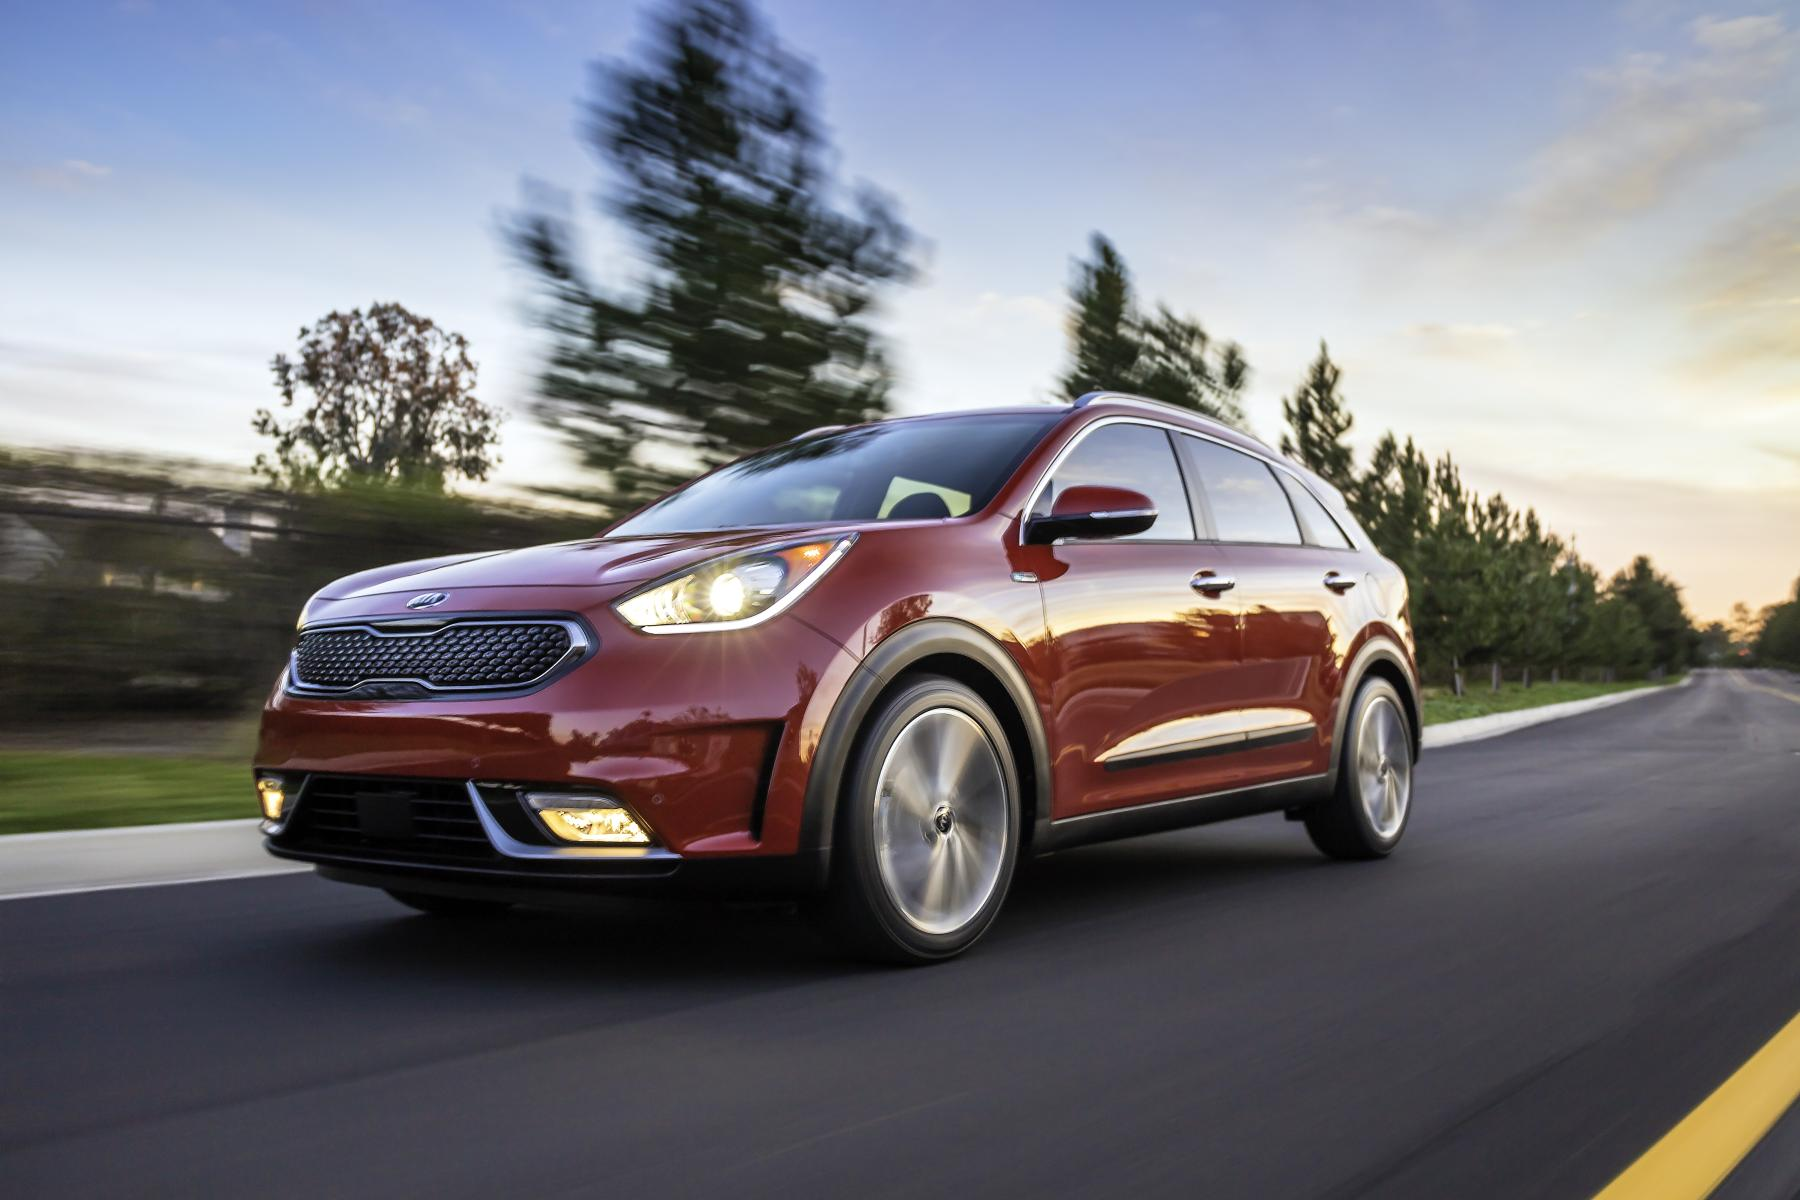 2017 kia niro hybrid unveiled with 1 6l engine and 50 mpg. Black Bedroom Furniture Sets. Home Design Ideas